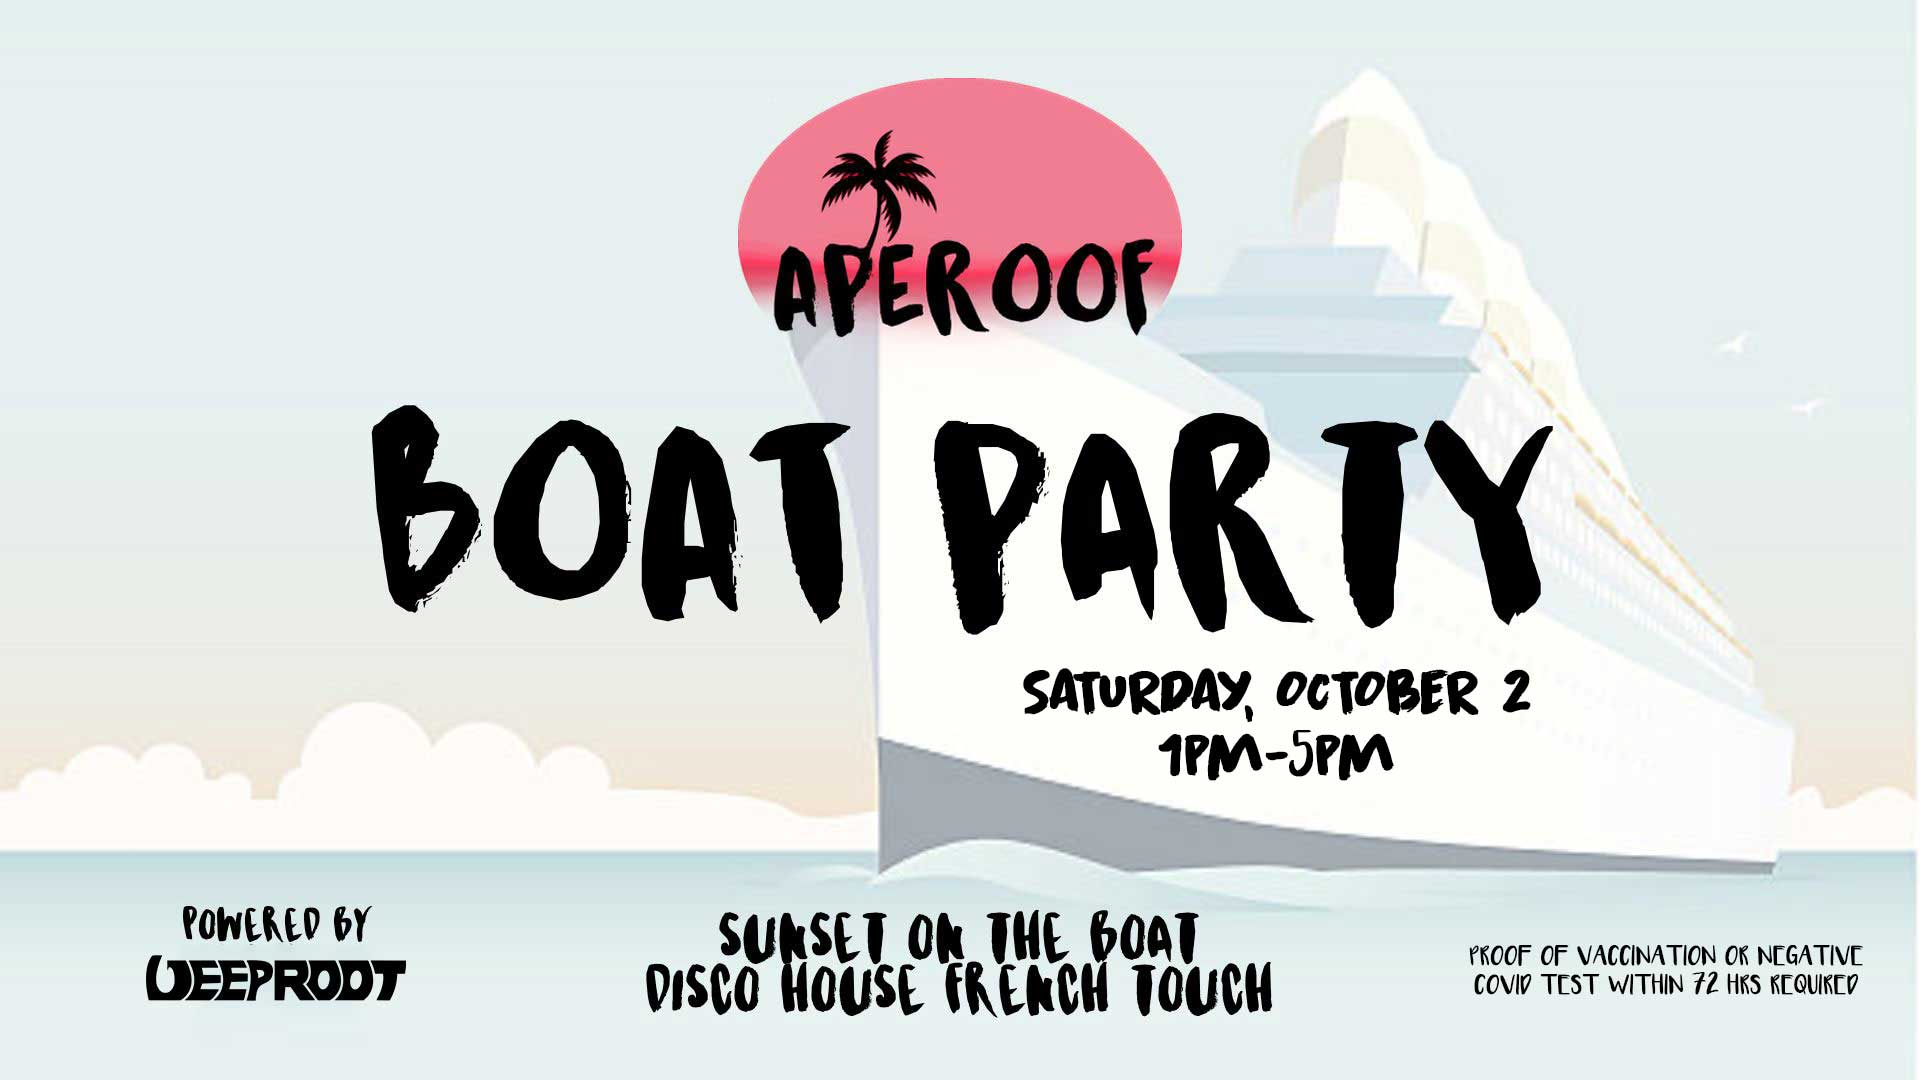 APEROOF On The Boat Powered by Deep Root   Jewel Yacht October 2nd